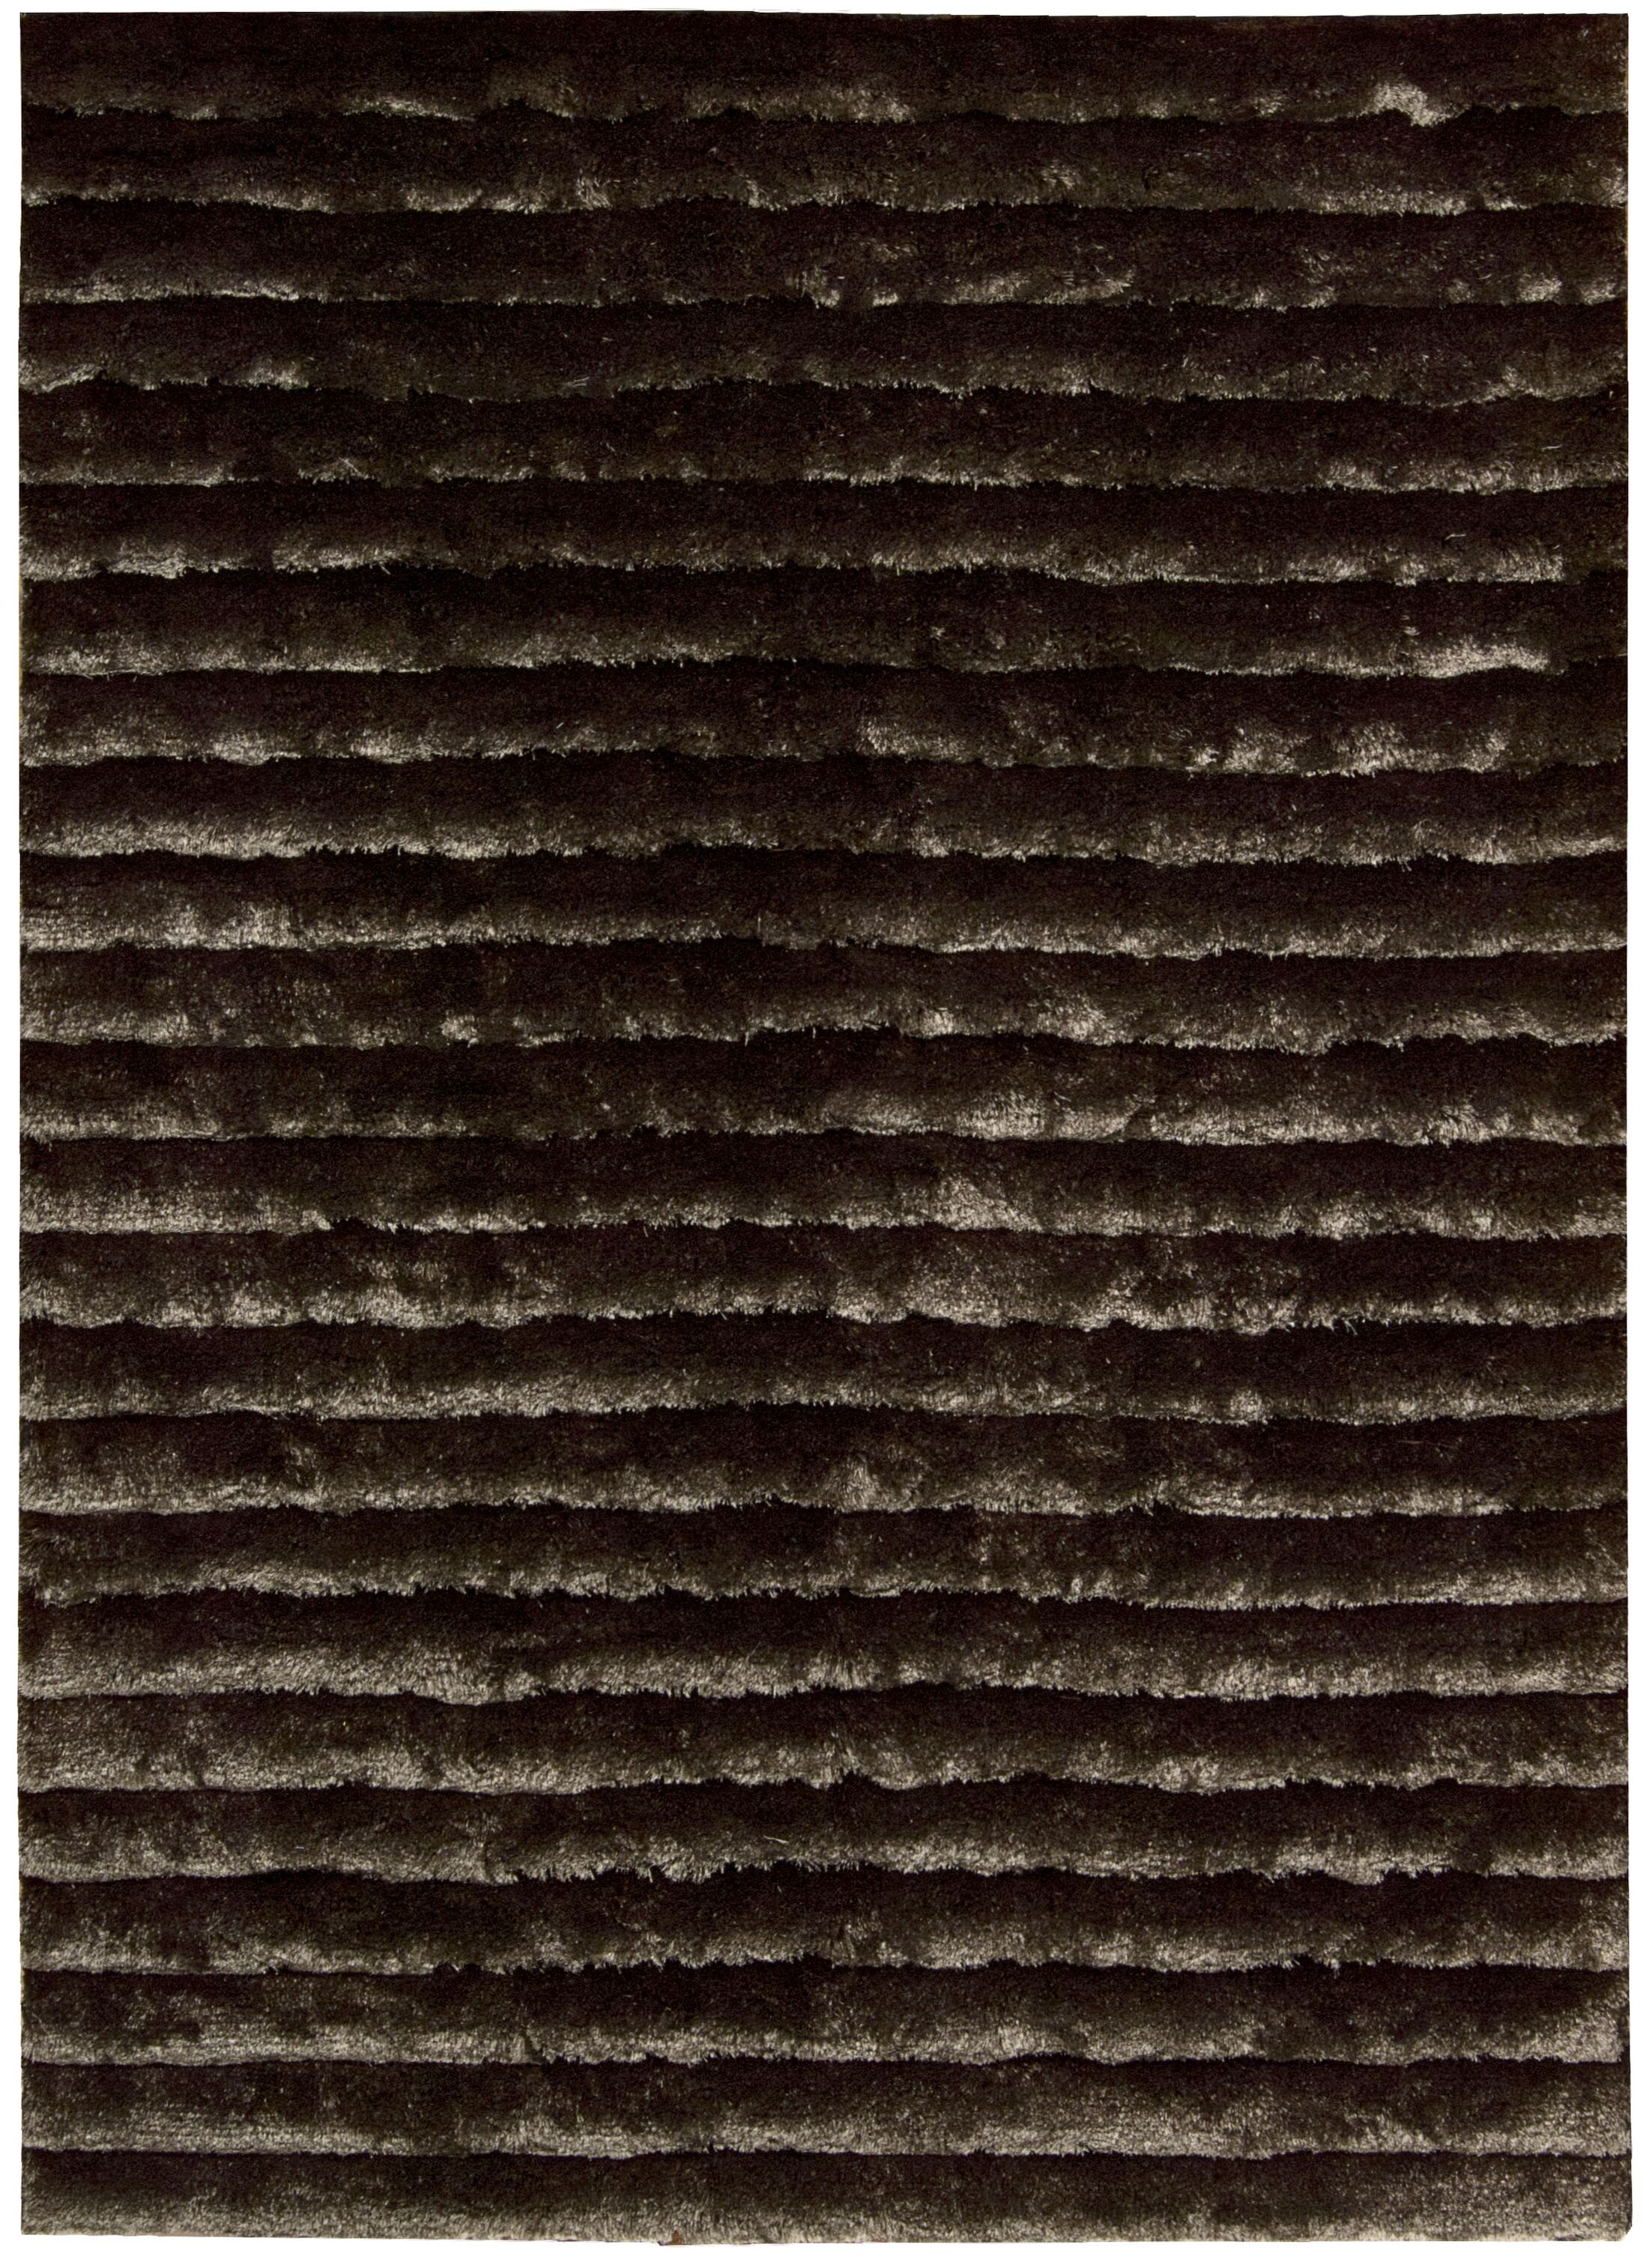 Veer Hand-Tufted Mahogany Area Rug Rug Size: Rectangle 8' x 10'